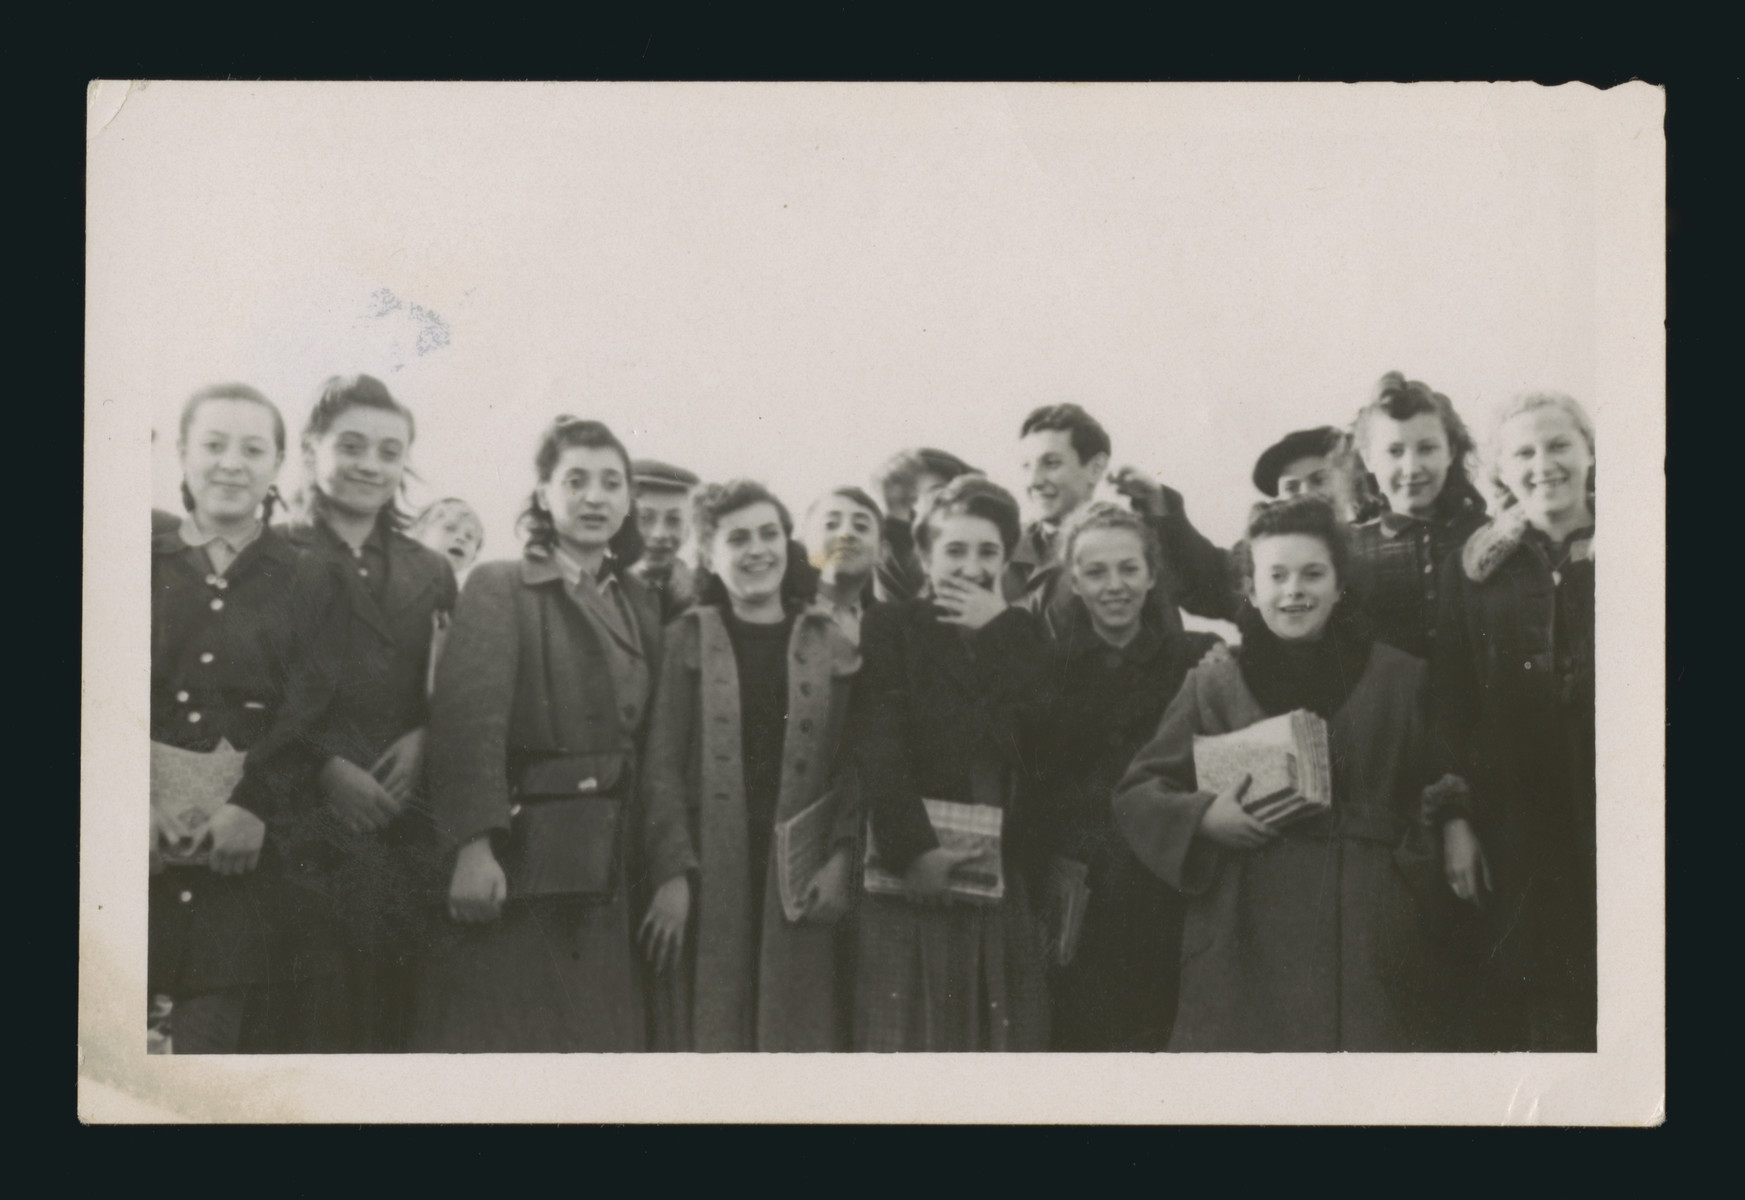 Group portrait of teenagers in the Schlachtensee displaced persons camp.